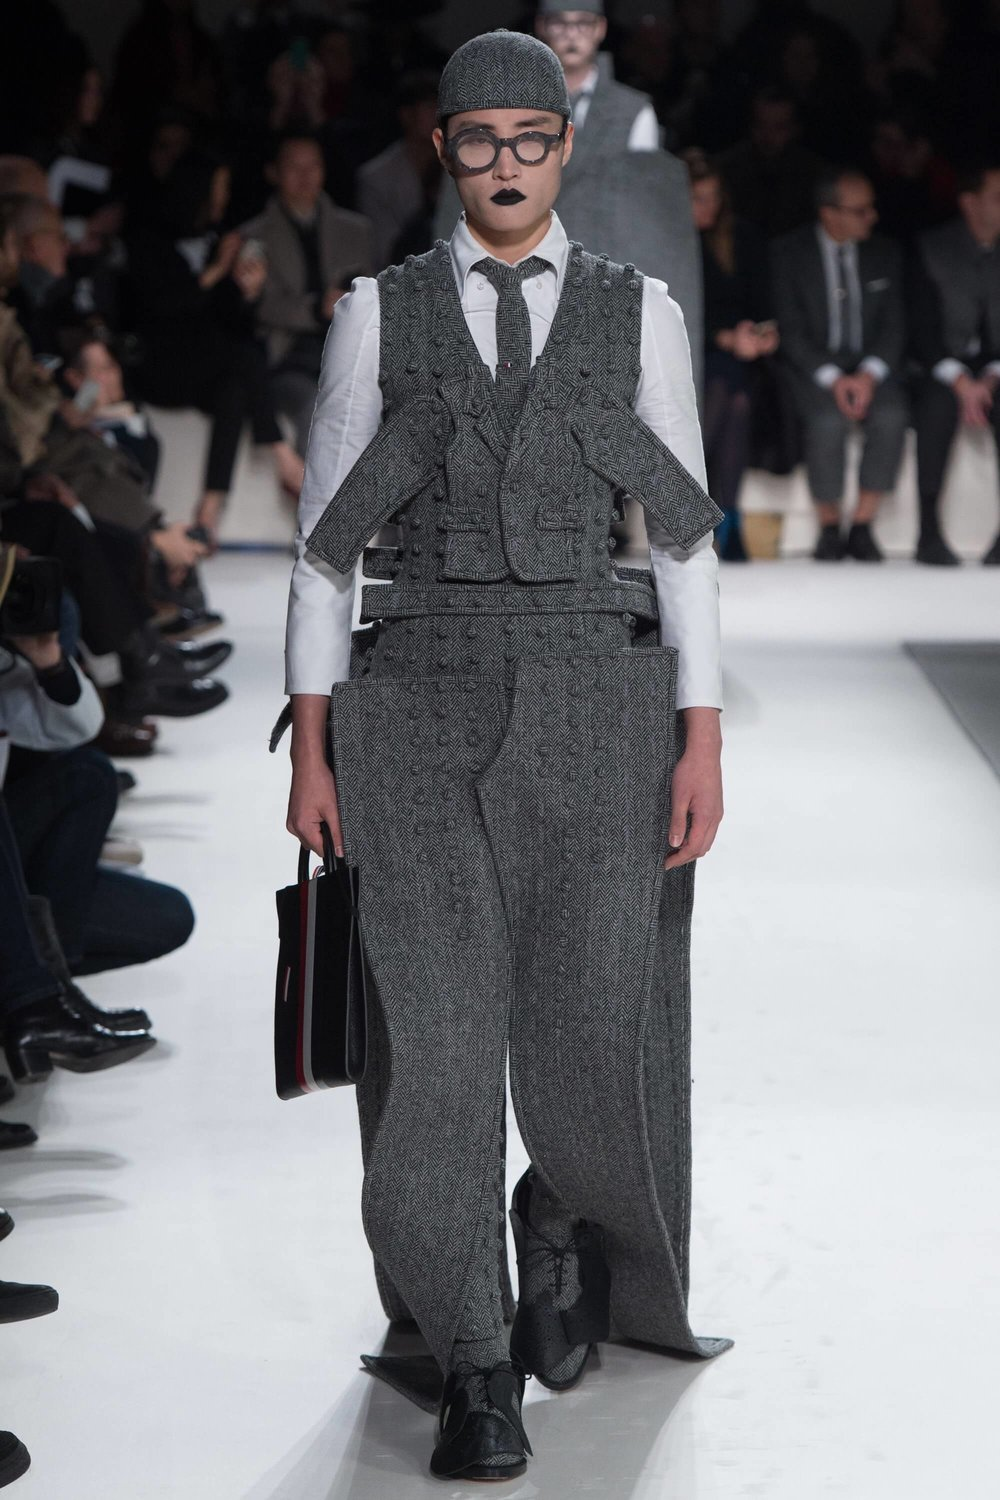 Thom-Browne-Never-Fails-to-Amaze-Thatsitmag-Thatsitmagazine-GraceBrookes-Paris-Fashion-week6.jpg